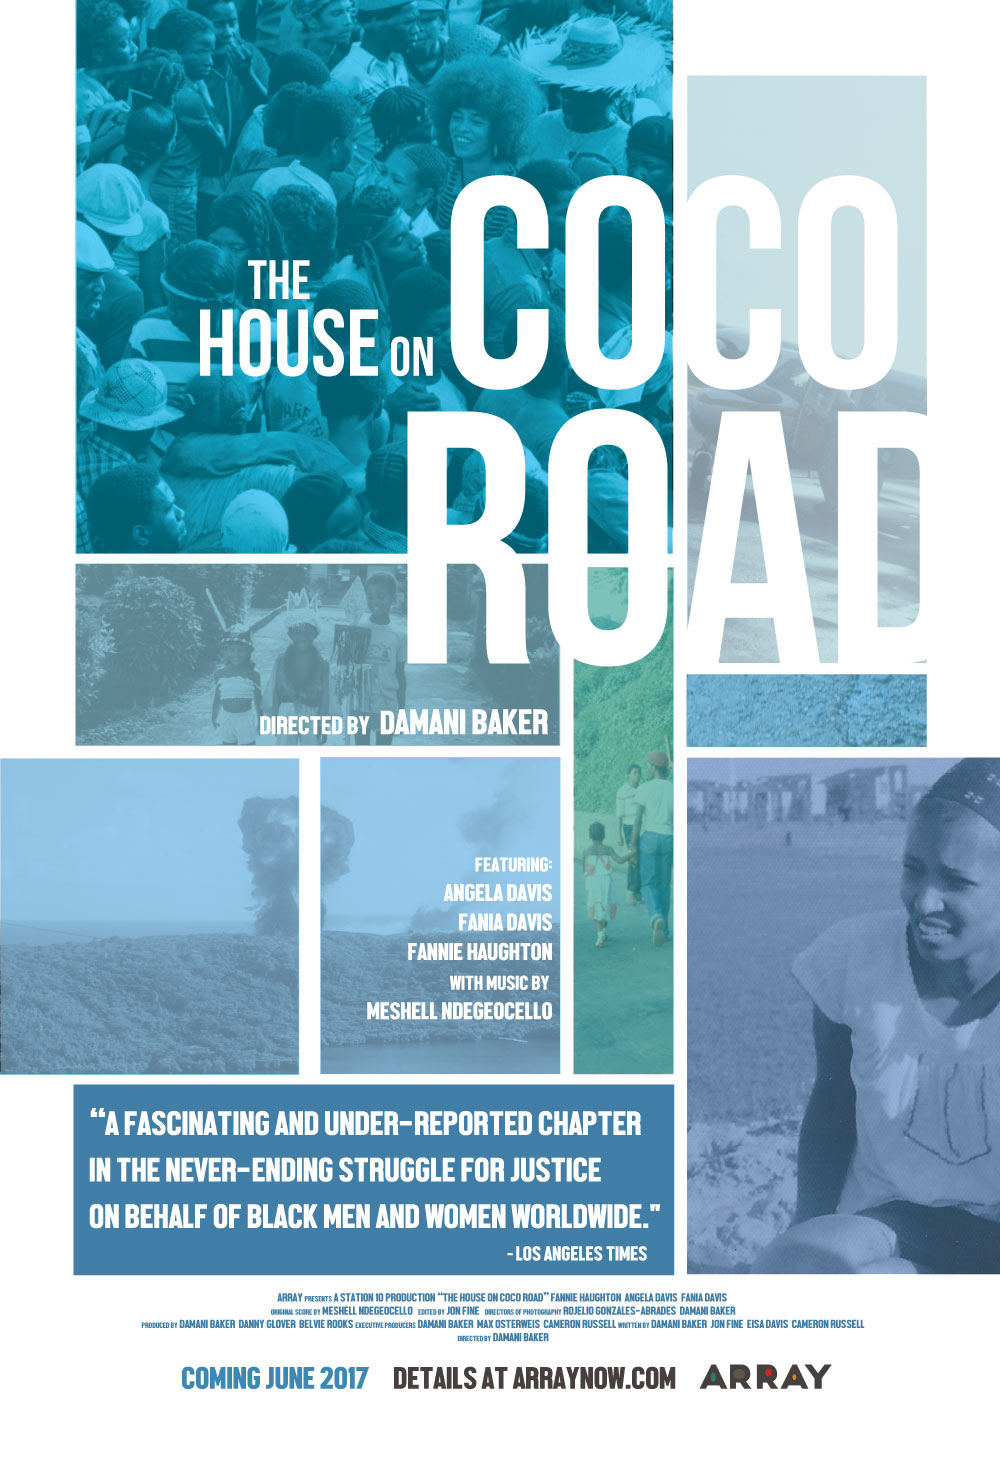 TheHouseOnCocoRoad_TheatricalPoster_ForWeb.jpg